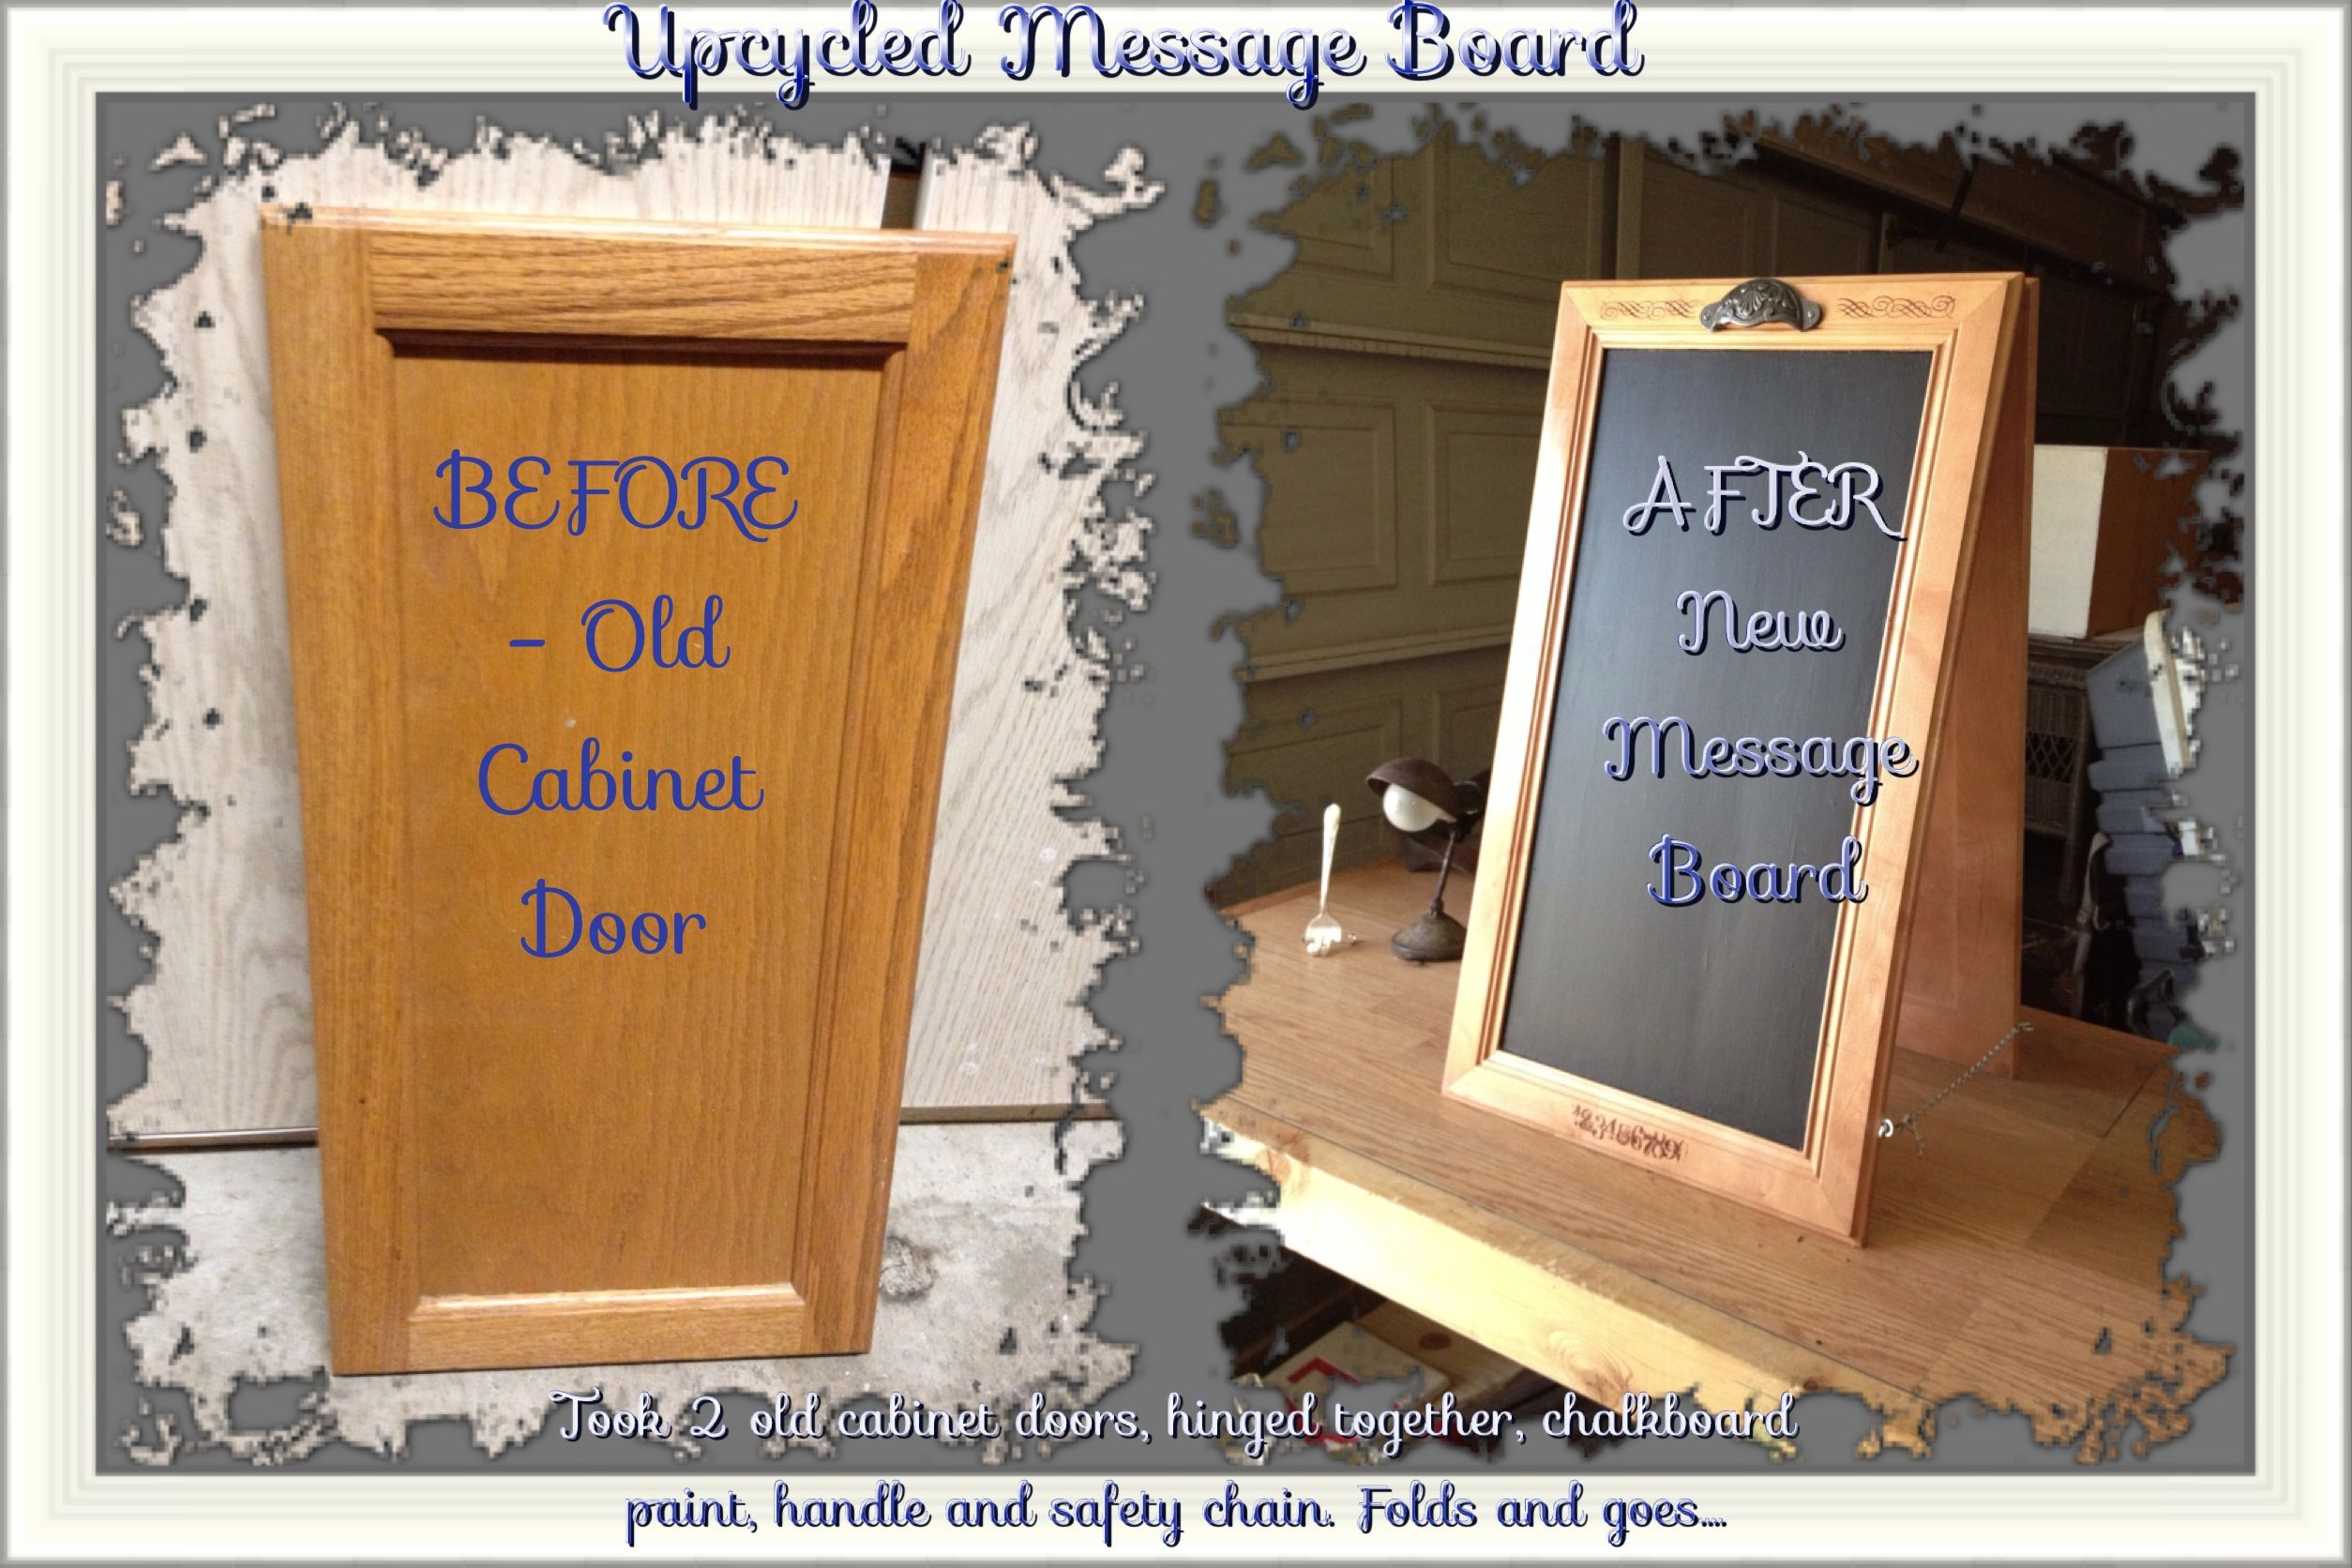 Upcycled Kitchen Cabinet Doors Into New Message Board